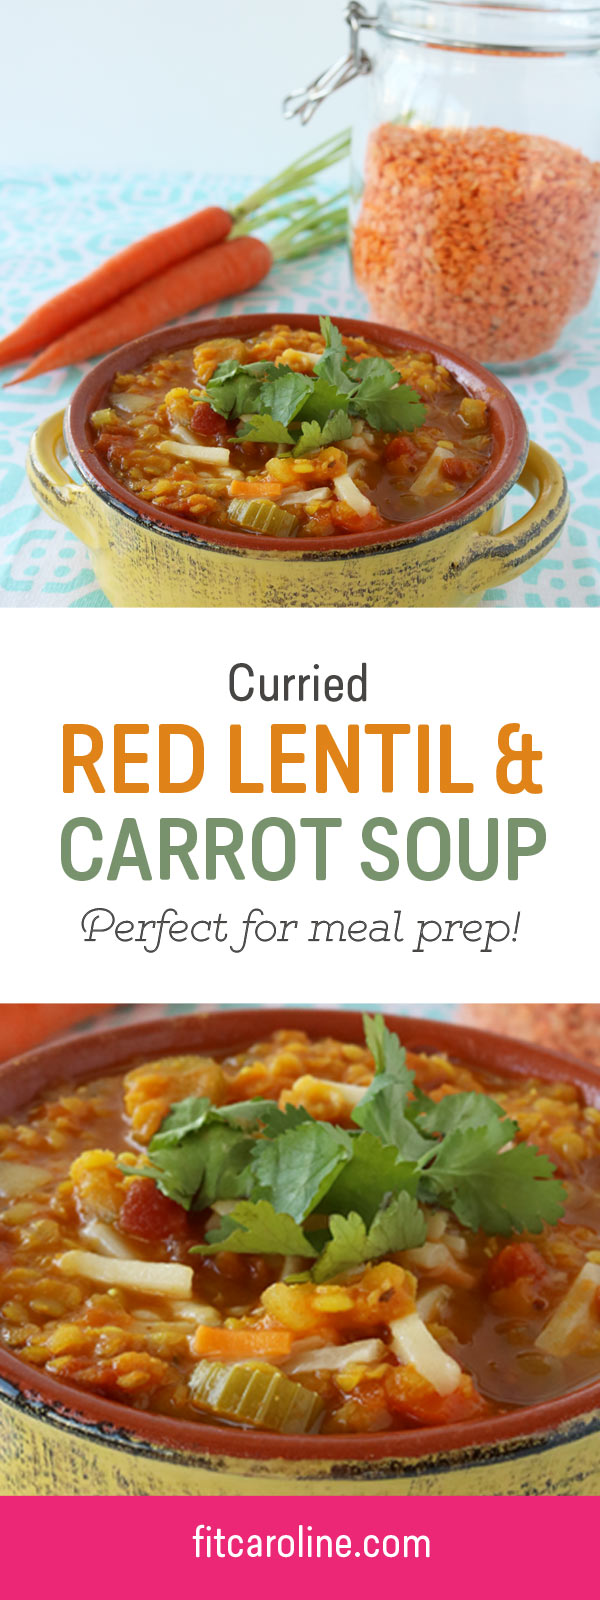 fitcaroline_red_lentil_soup_carrots_blog